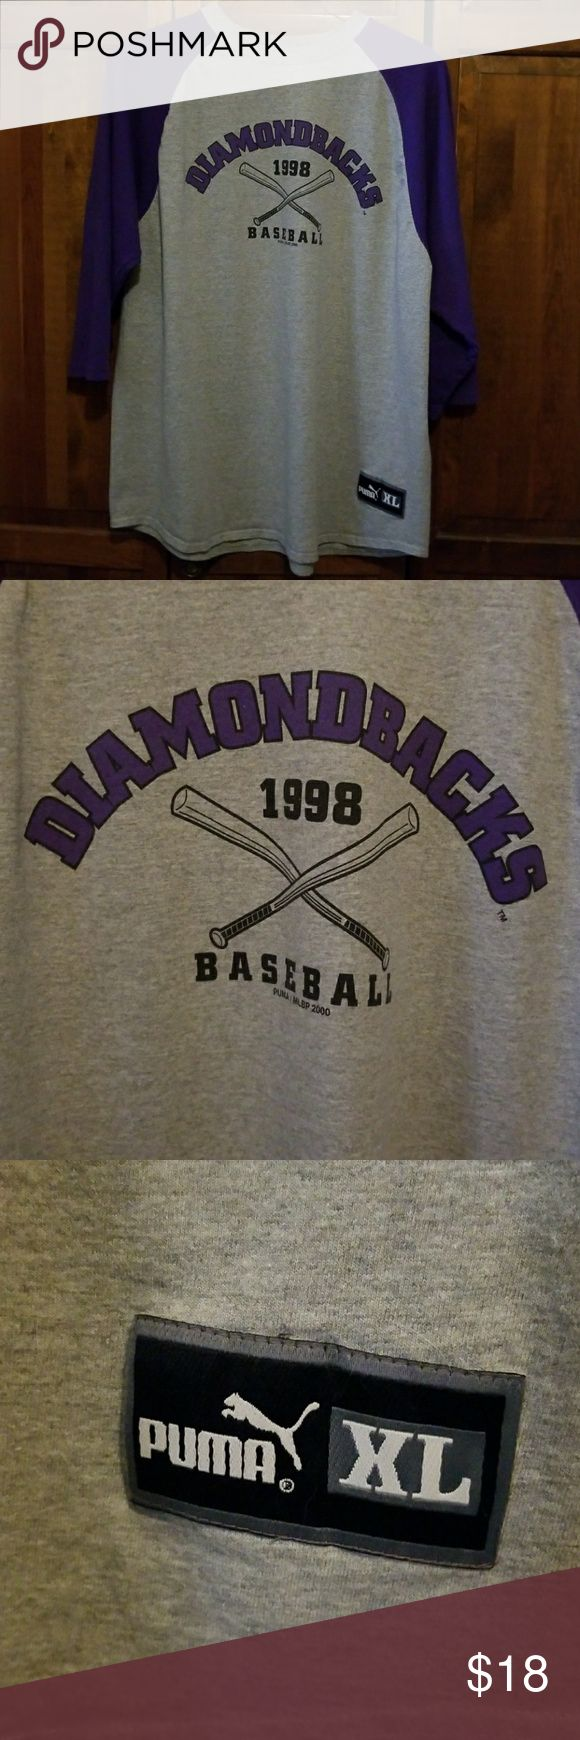 1998 AZ Diamondbacks Puma 3/4 Sleeve T-Shirt Grey and purple Diamond 1998 T-shirt has 3/4 length sleeve, by Puma, never worn, Excellent Condition!!! Puma Shirts Tees - Long Sleeve